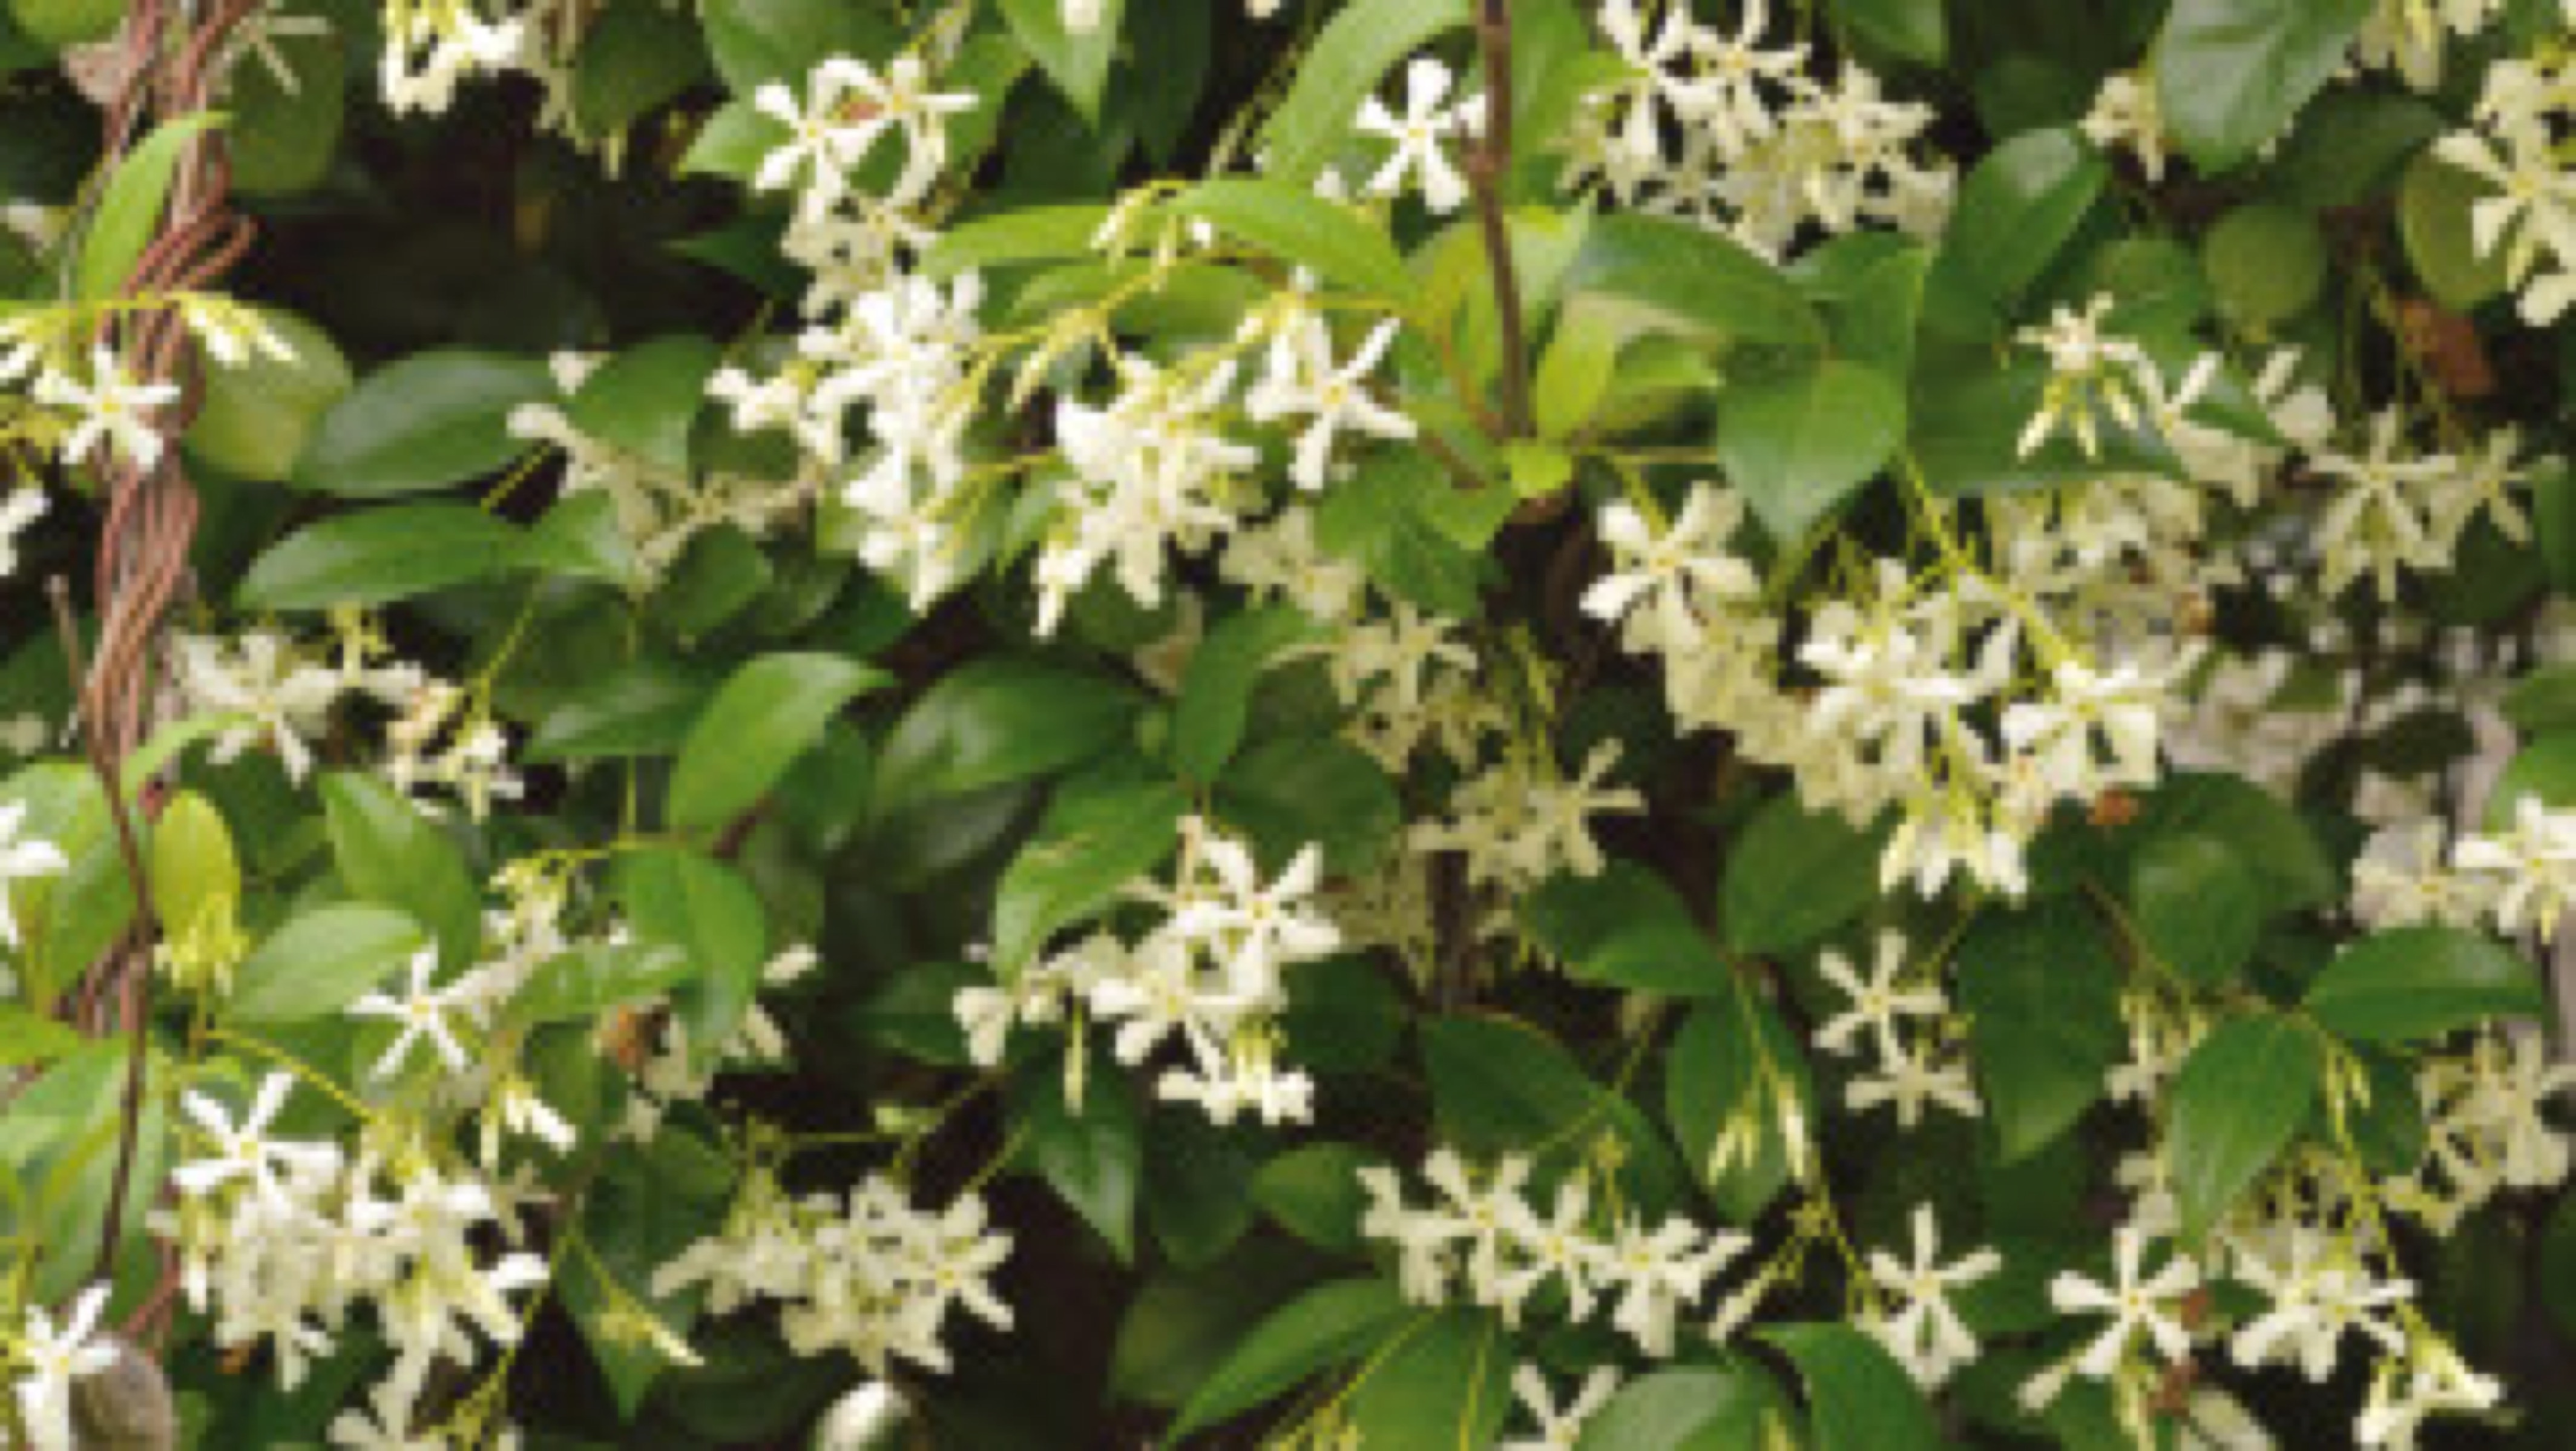 Jasminum or jasmine vine in full bloom.